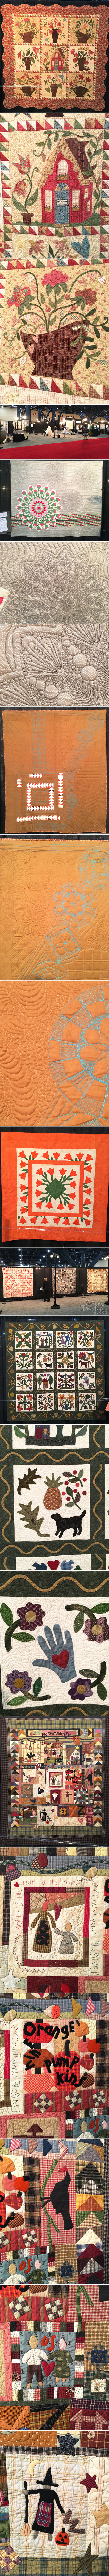 From the Balzer Designs Blog: Quilt Festival: Part Four #quilting